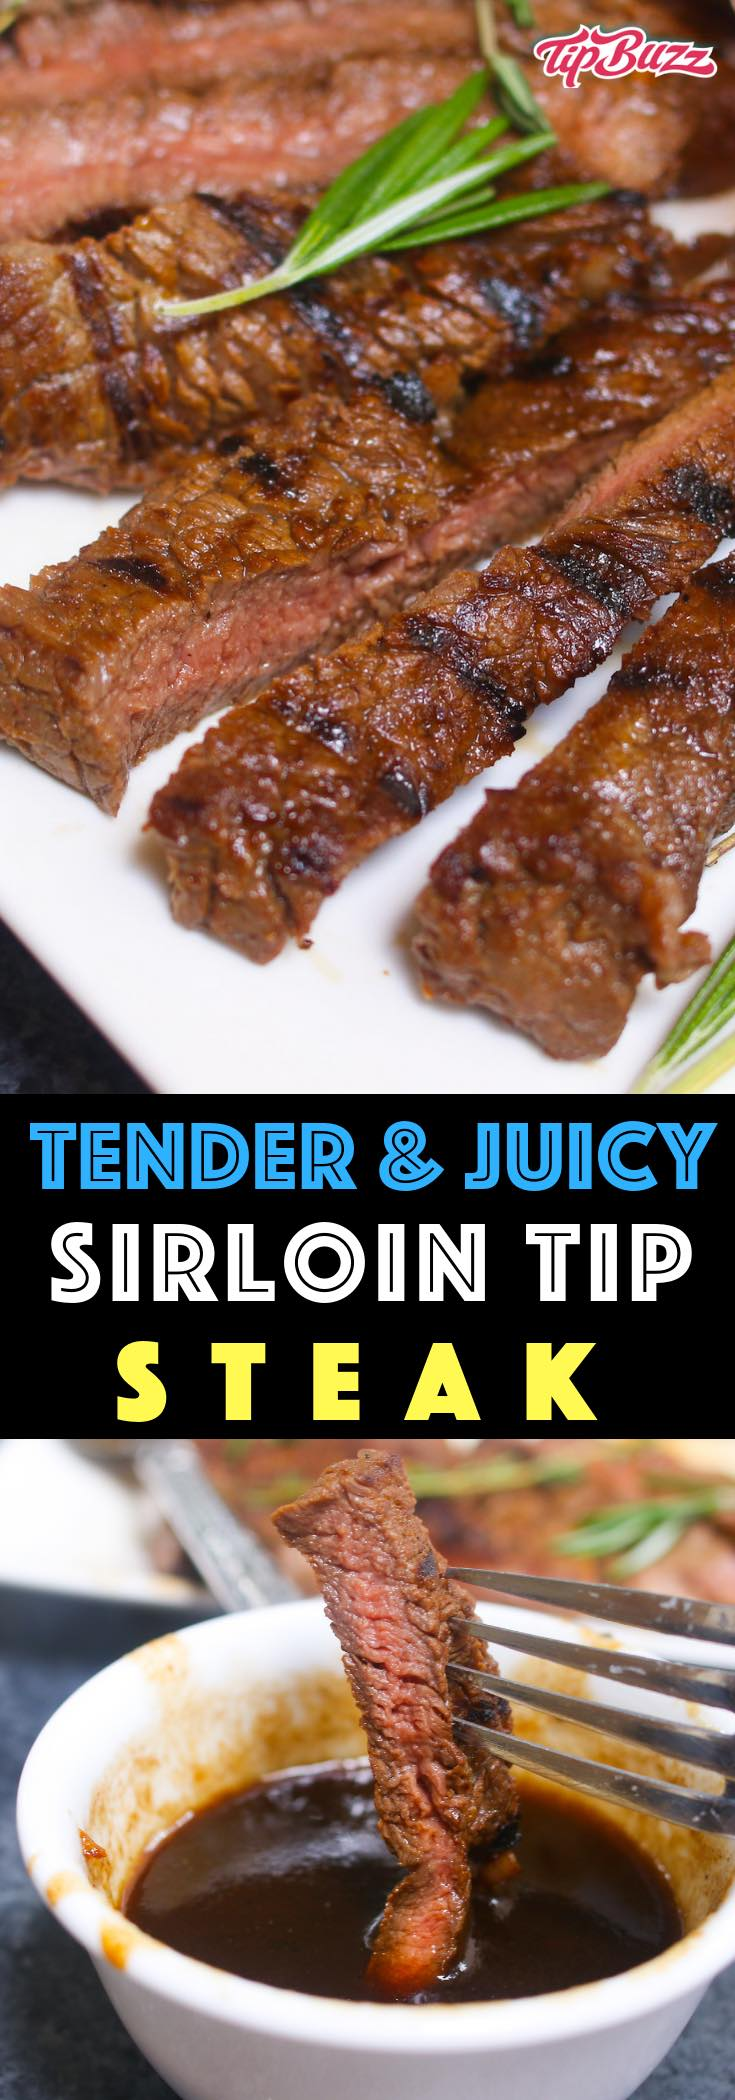 Sirloin Tip Steak is juicy and flavorful with a crunchy crust on the outside. A simple balsamic and honey marinade turns this lean cut into a tender steak dinner that melts in your mouth.